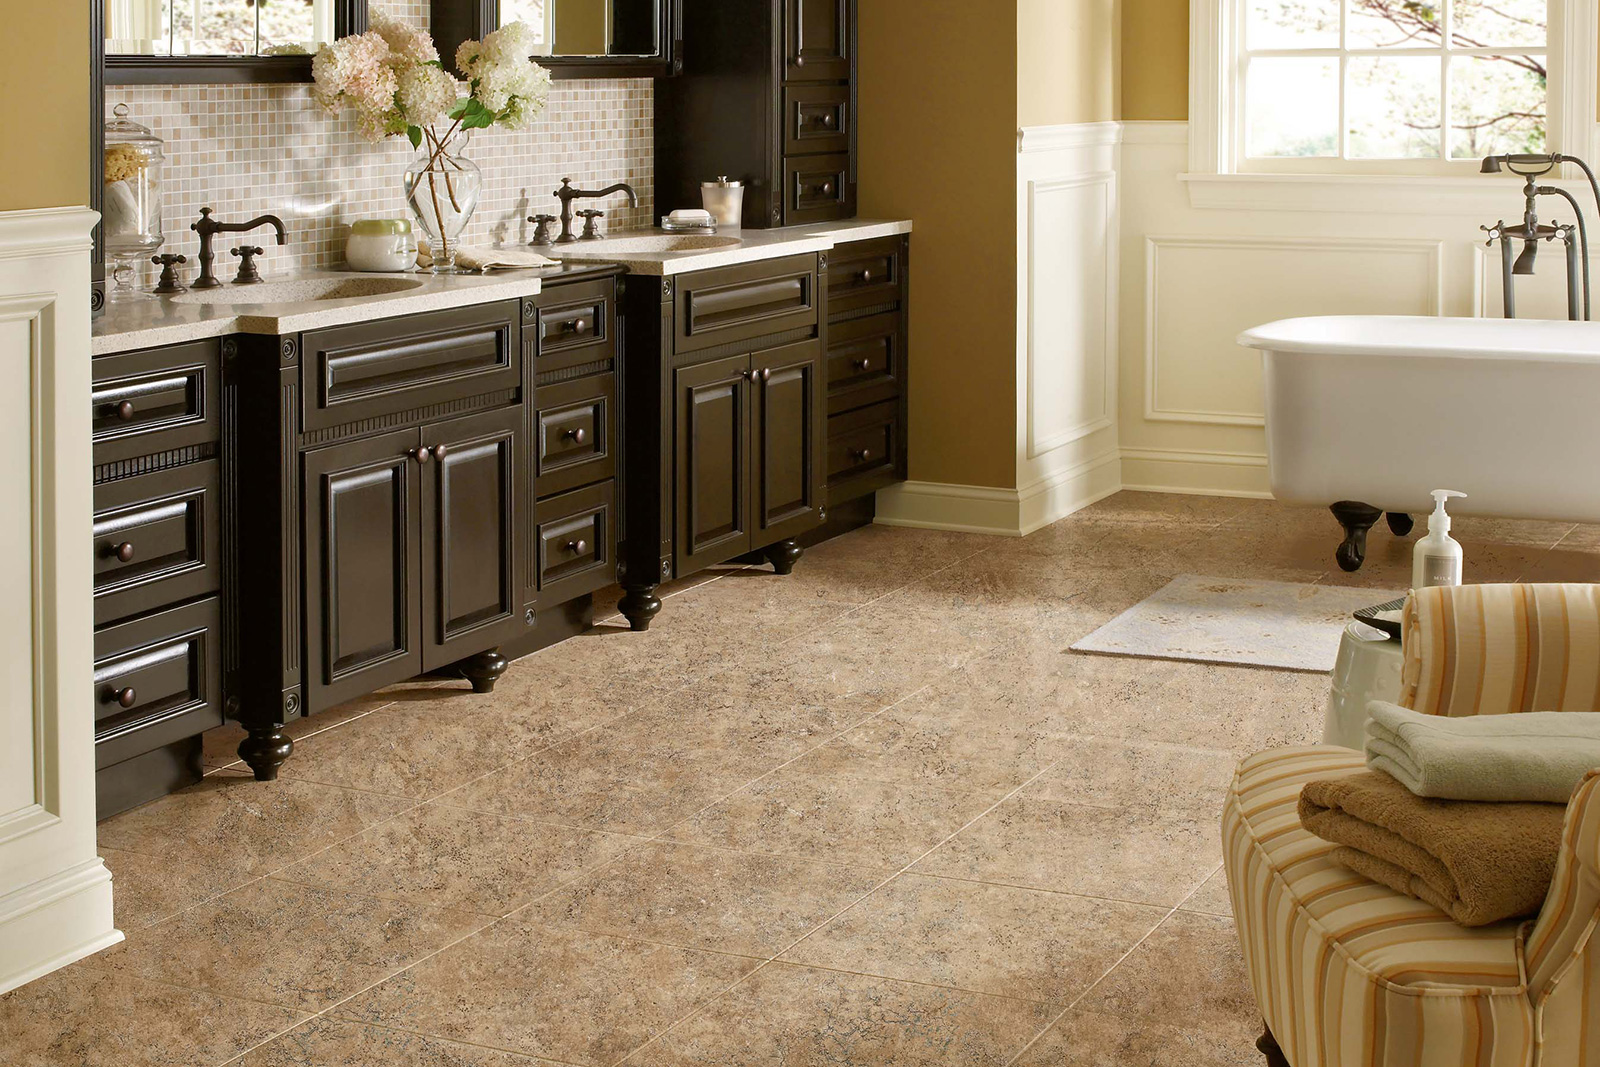 Is Cork Flooring Good For Kitchens Bathroom Flooring Bathroom Flooring Options Houselogic Bathrooms